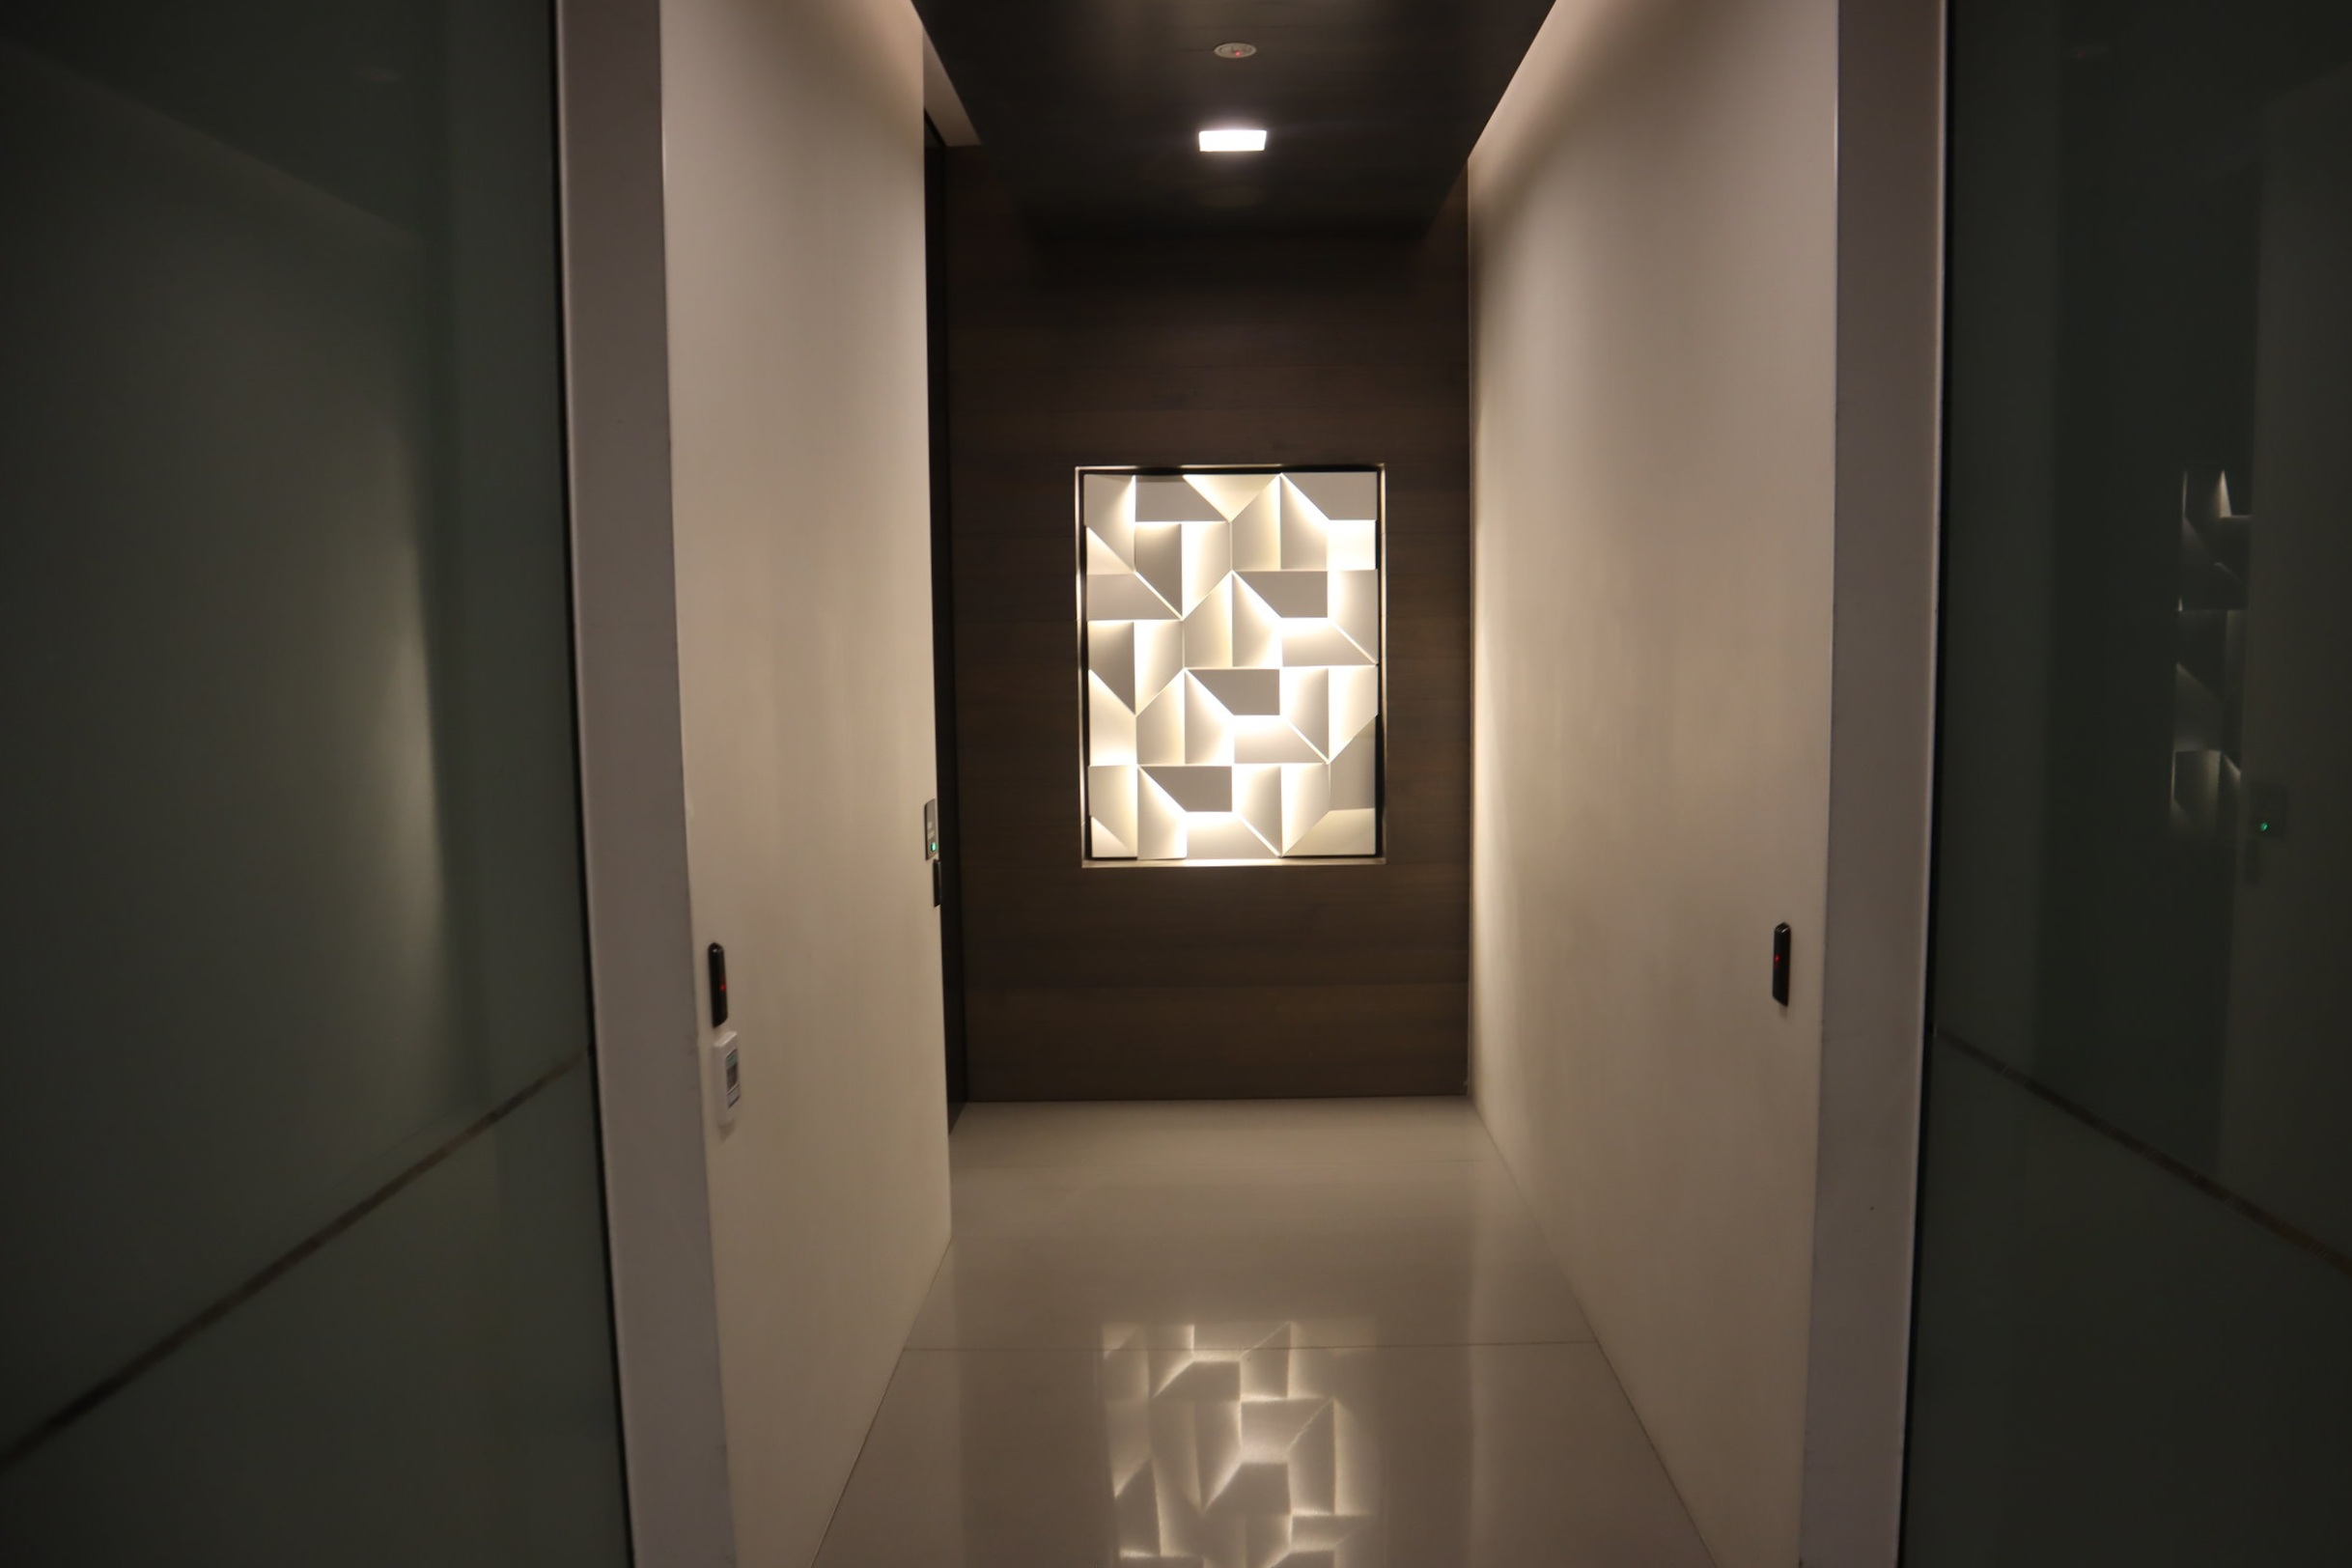 Air New Zealand Lounge Auckland – Hallway to showers